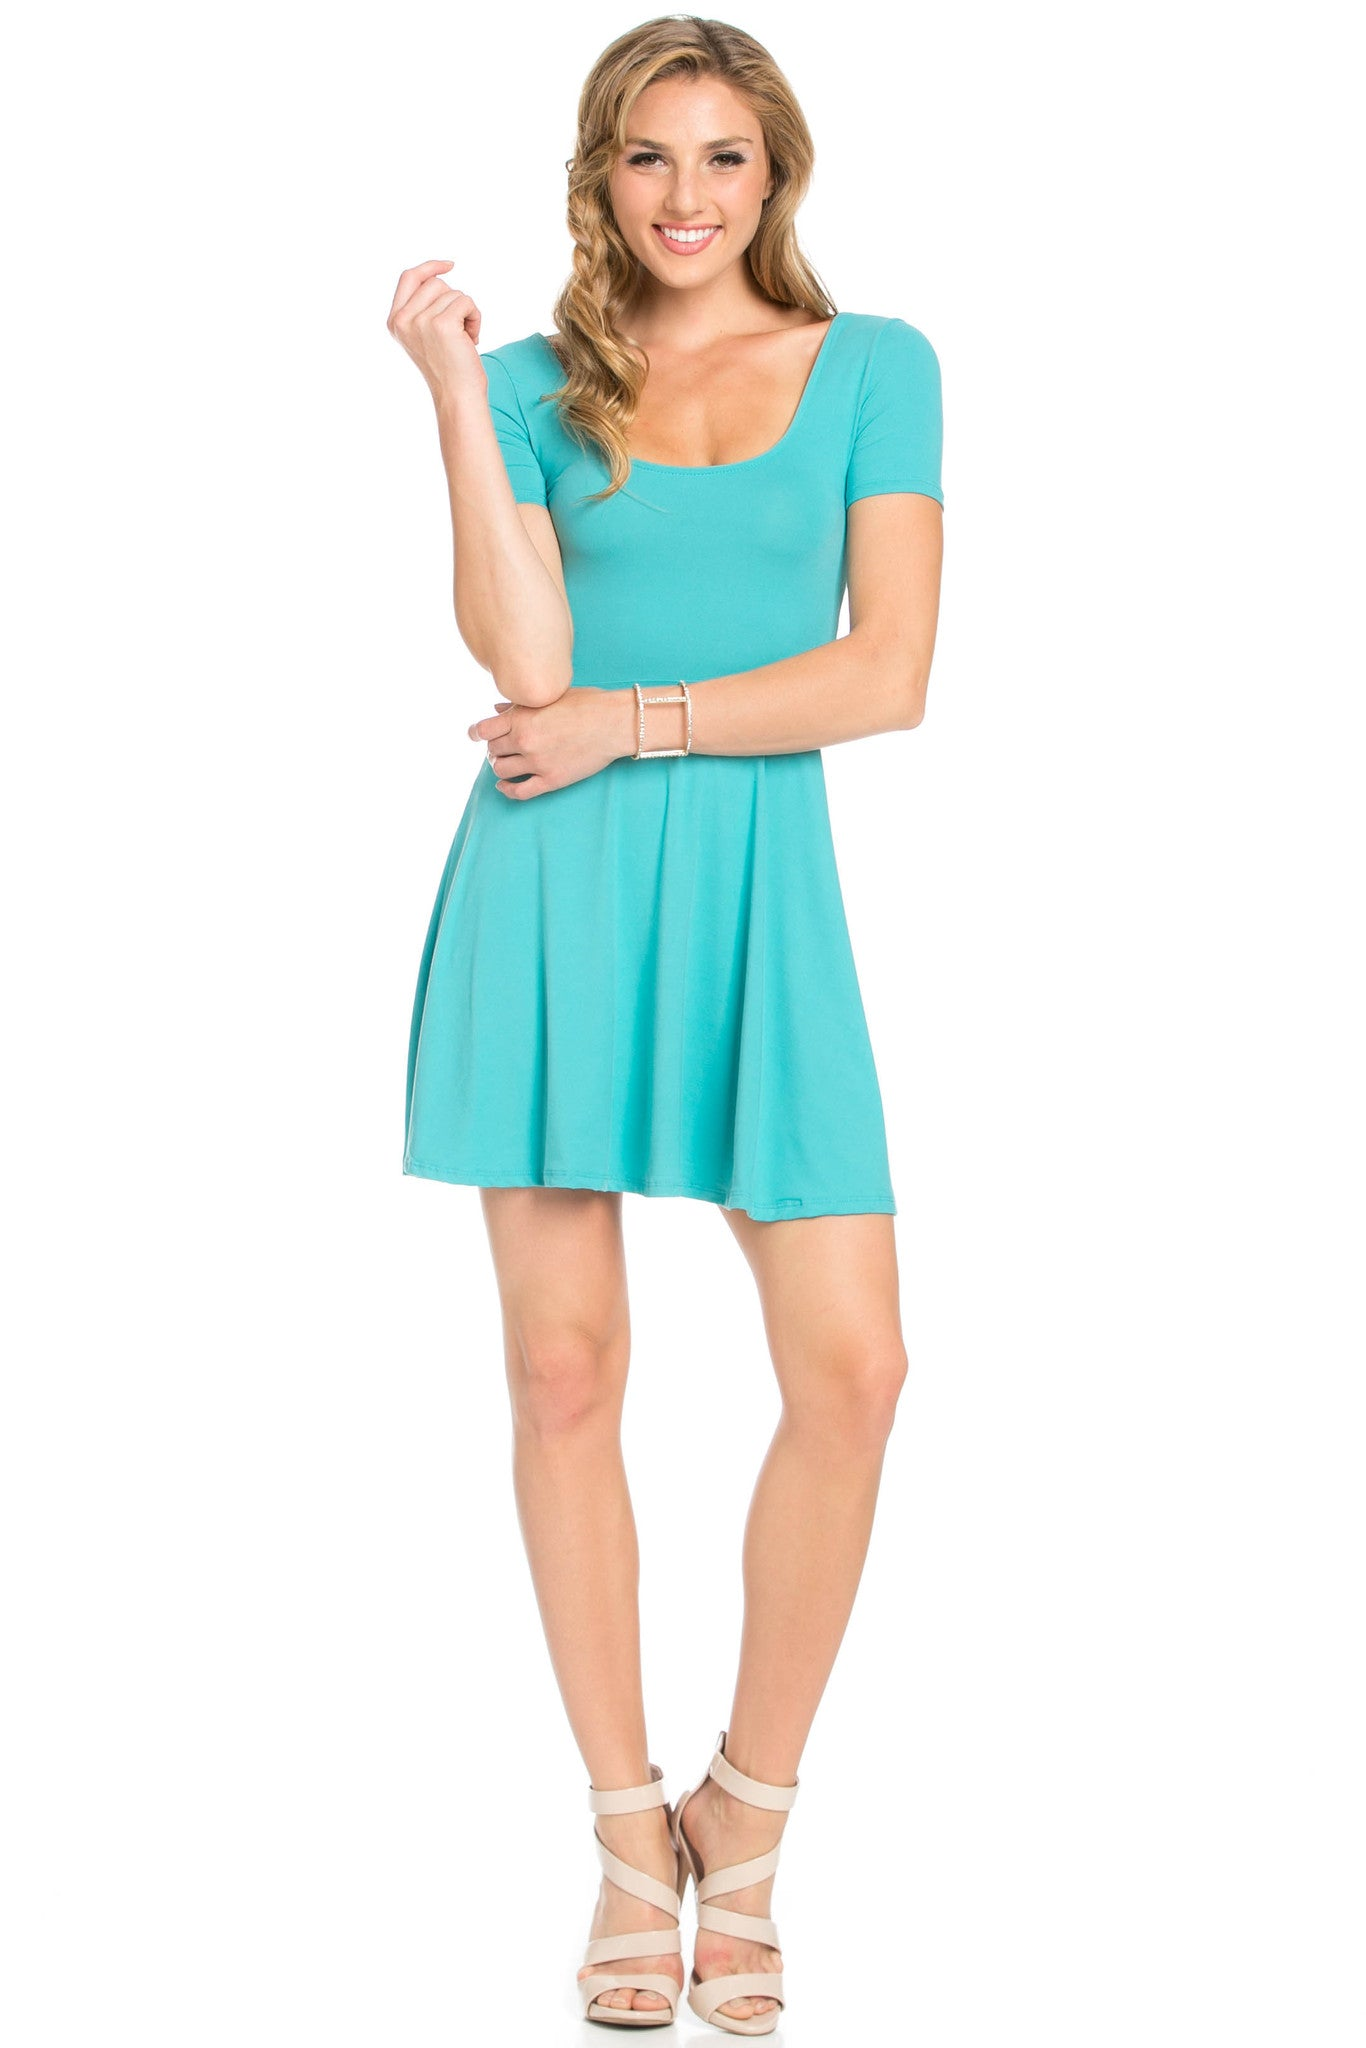 Micro Suede Jade Mini Dress - Dresses - My Yuccie - 5